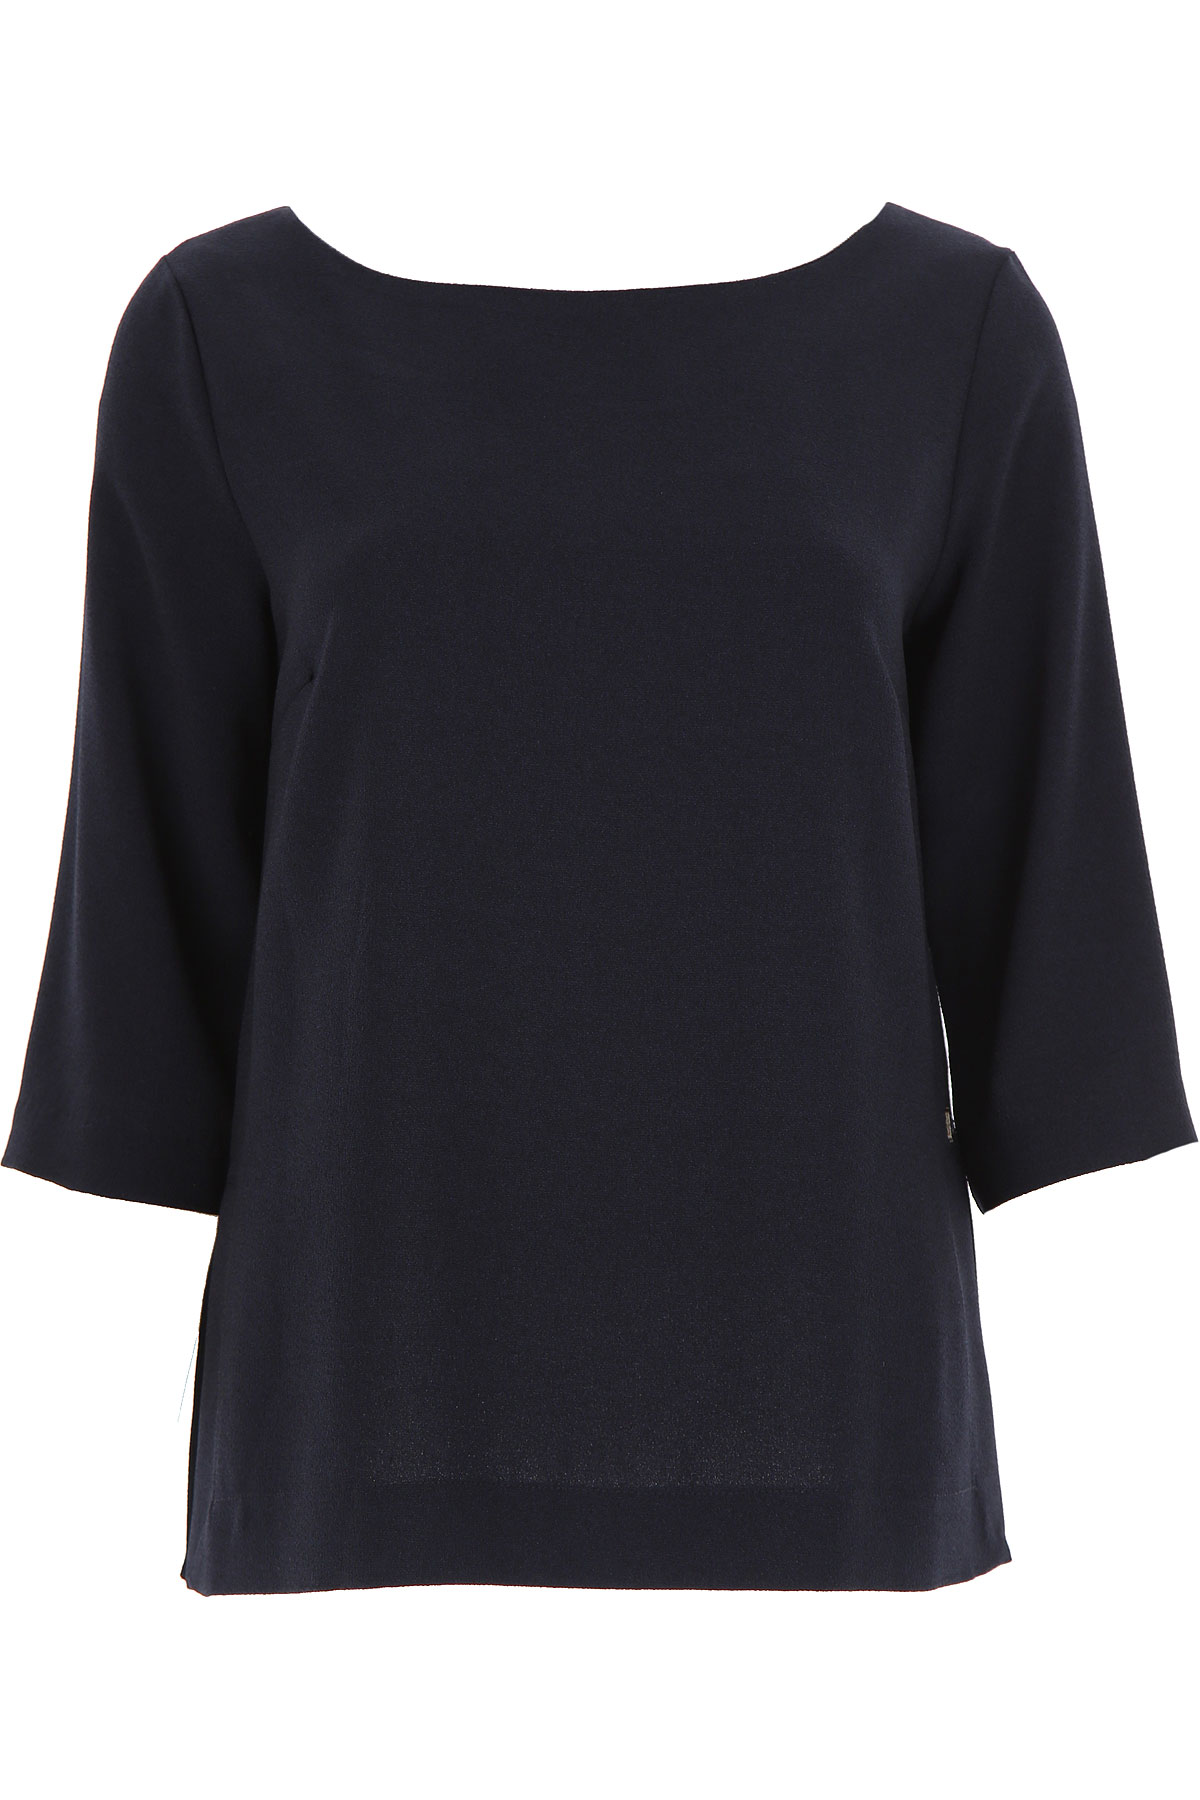 Image of Ottodame Top for Women On Sale, Blue, polyester, 2017, US 4 - I 40 - GB 8 - F36 US 8 - I 44 - GB 12 - F 40 US 10 - I 46 - GB 14 - F 42